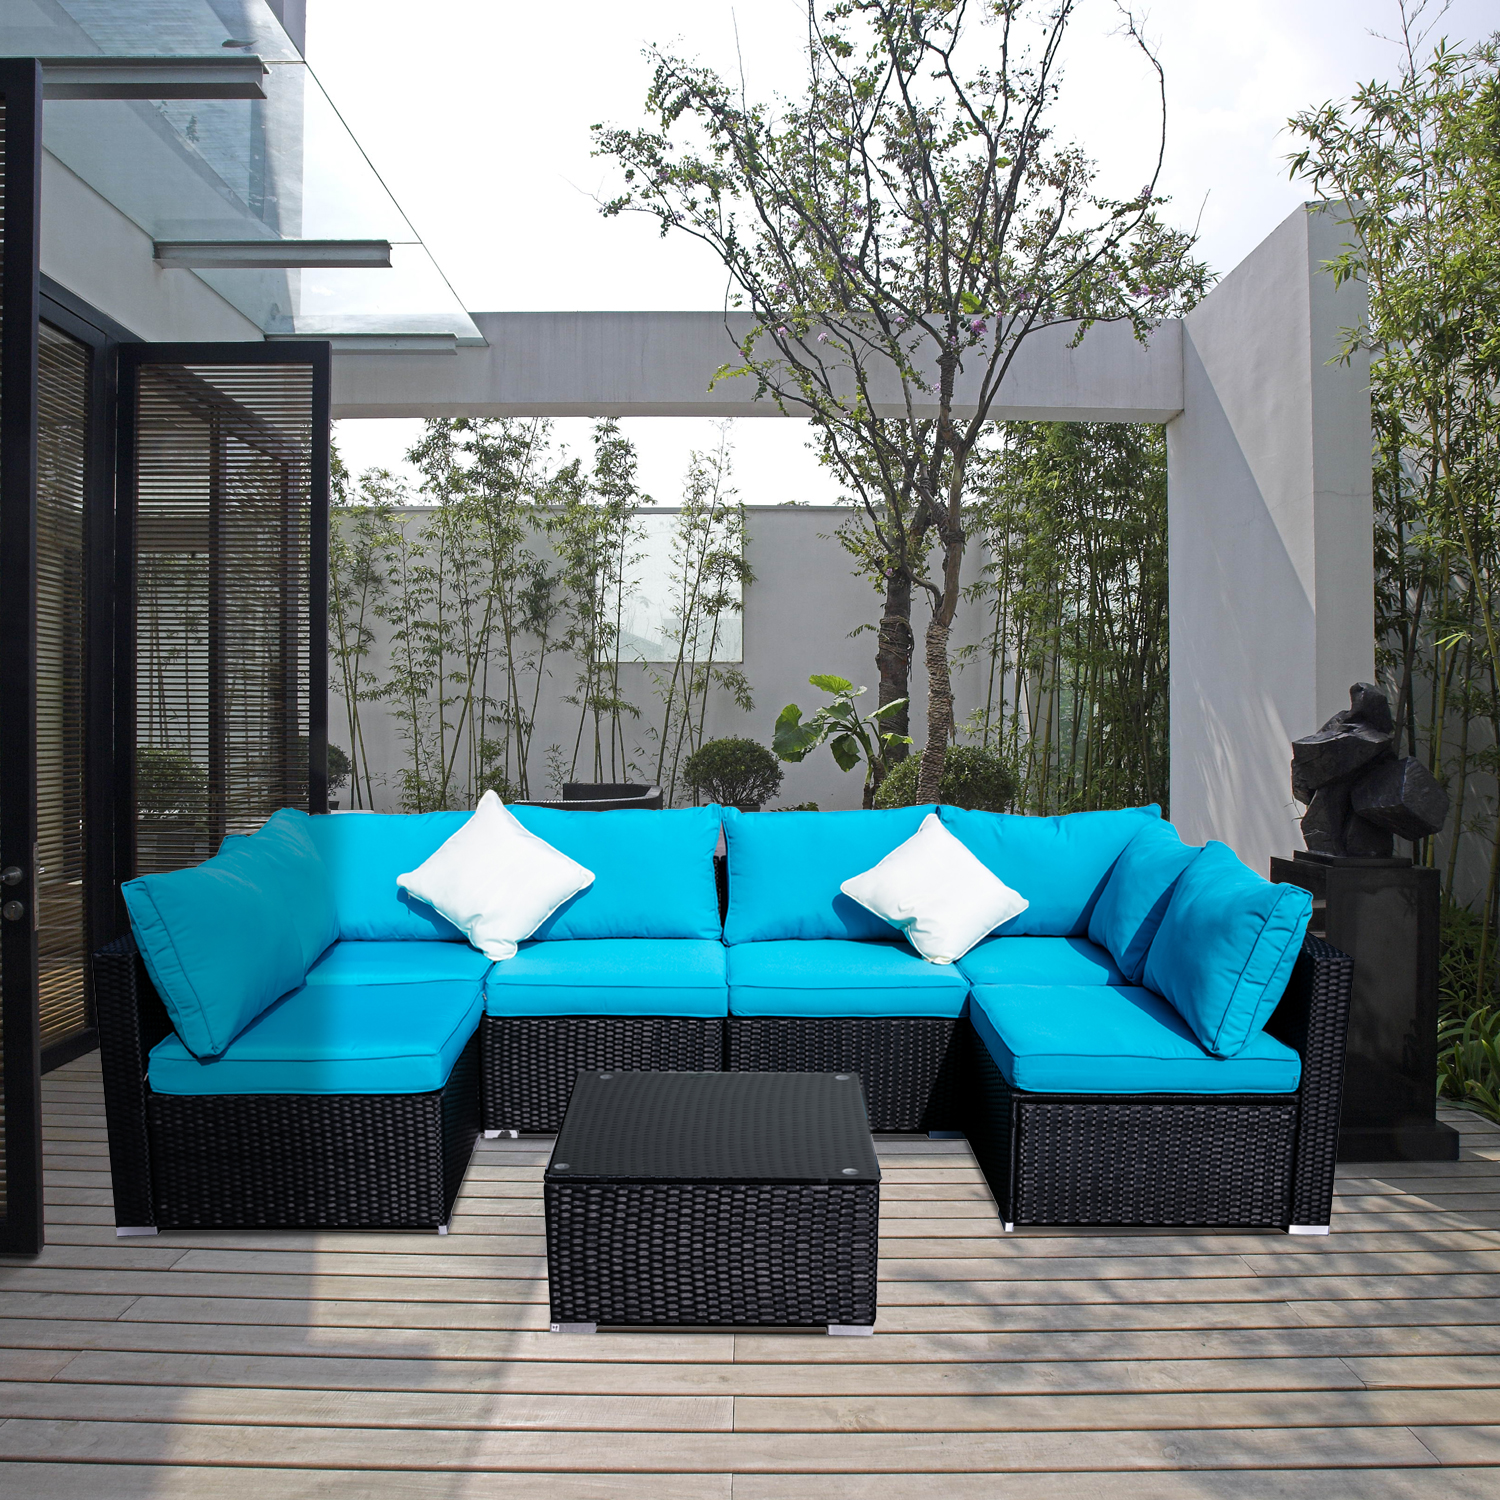 ainfox outdoor patio furniture on clearance 7 pieces pe rattan wicker sectional sofa sets with blue pillows cushions white pillows walmart com